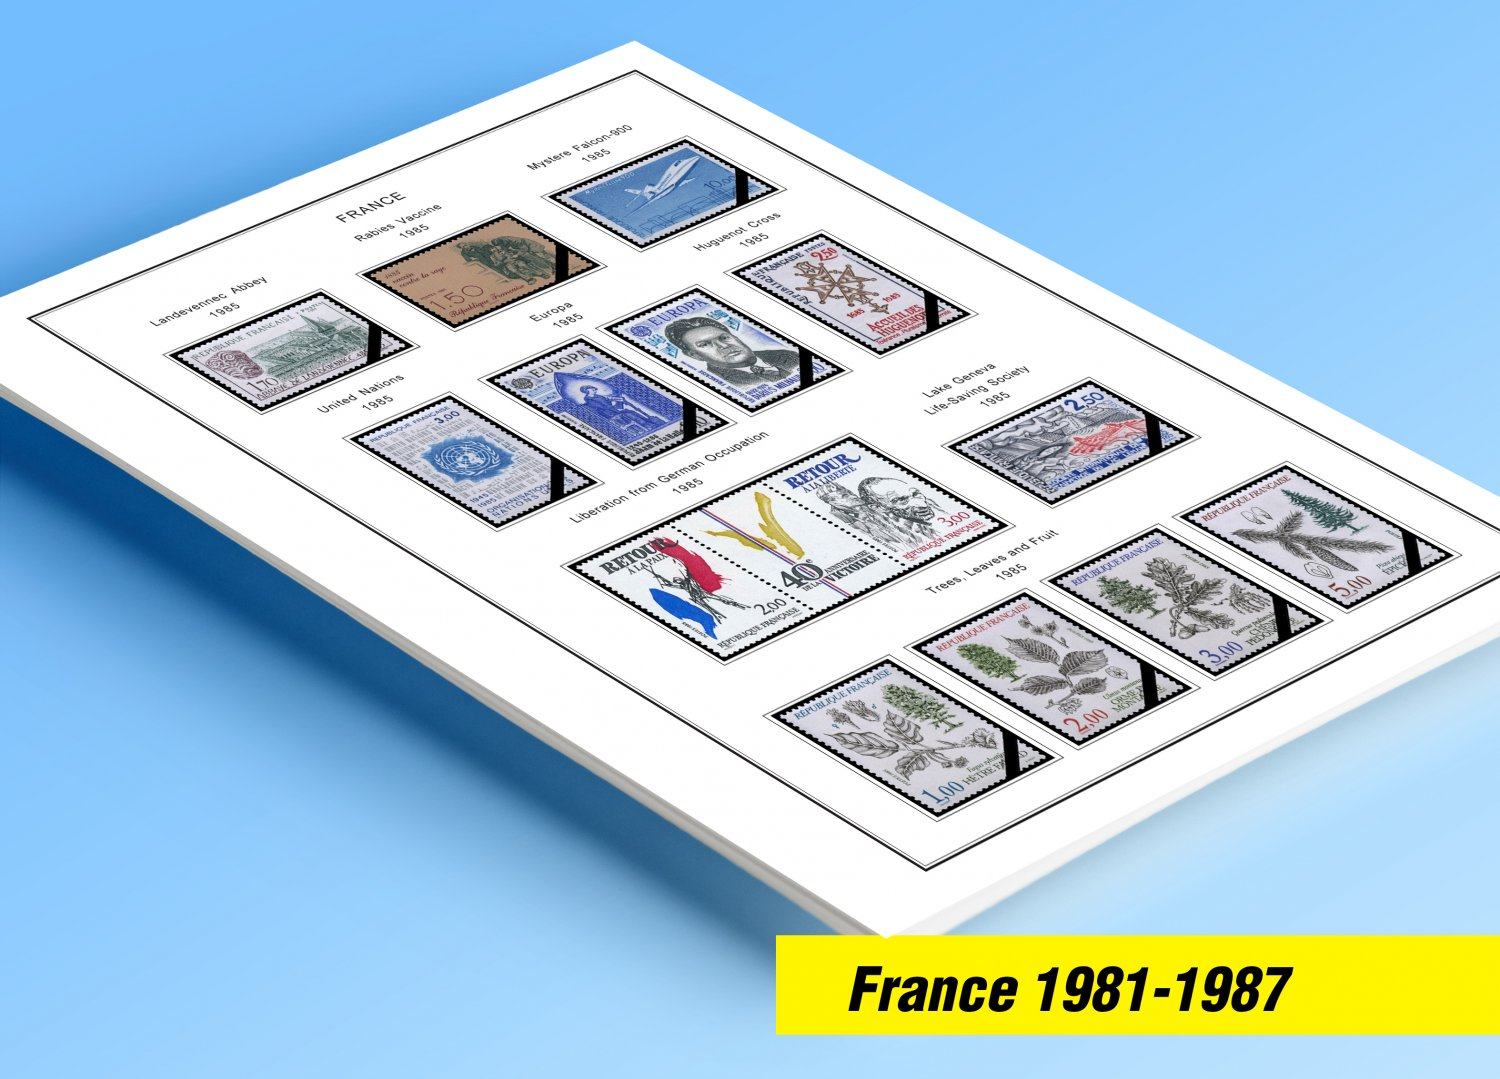 COLOR PRINTED FRANCE 1981-1987 STAMP ALBUM PAGES (30 illustrated pages)